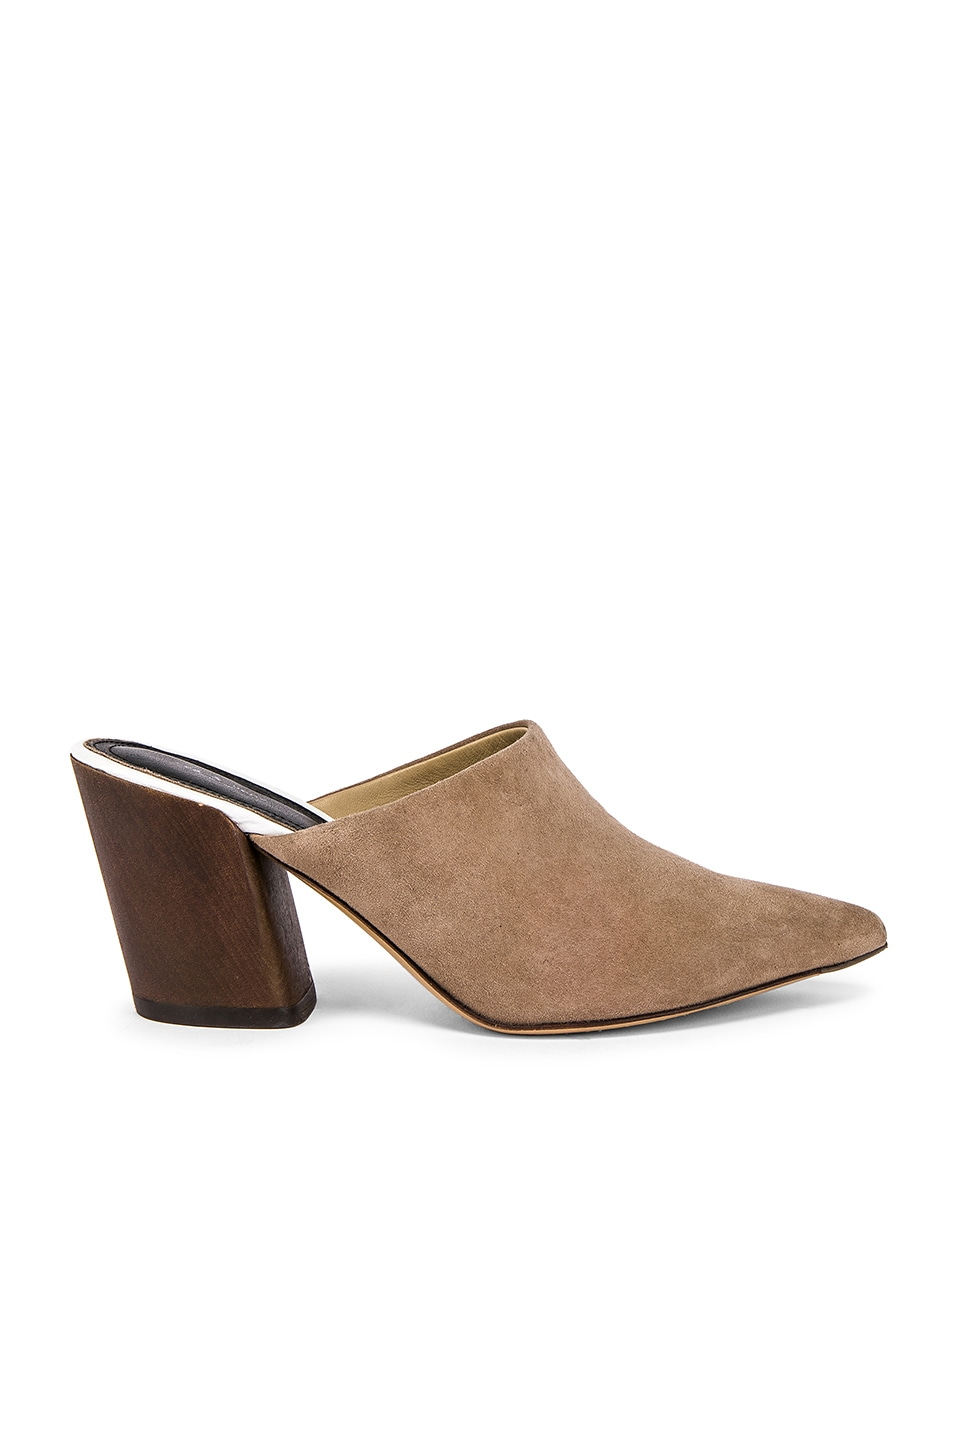 Rag & Bone Beha Mule in Light Sand